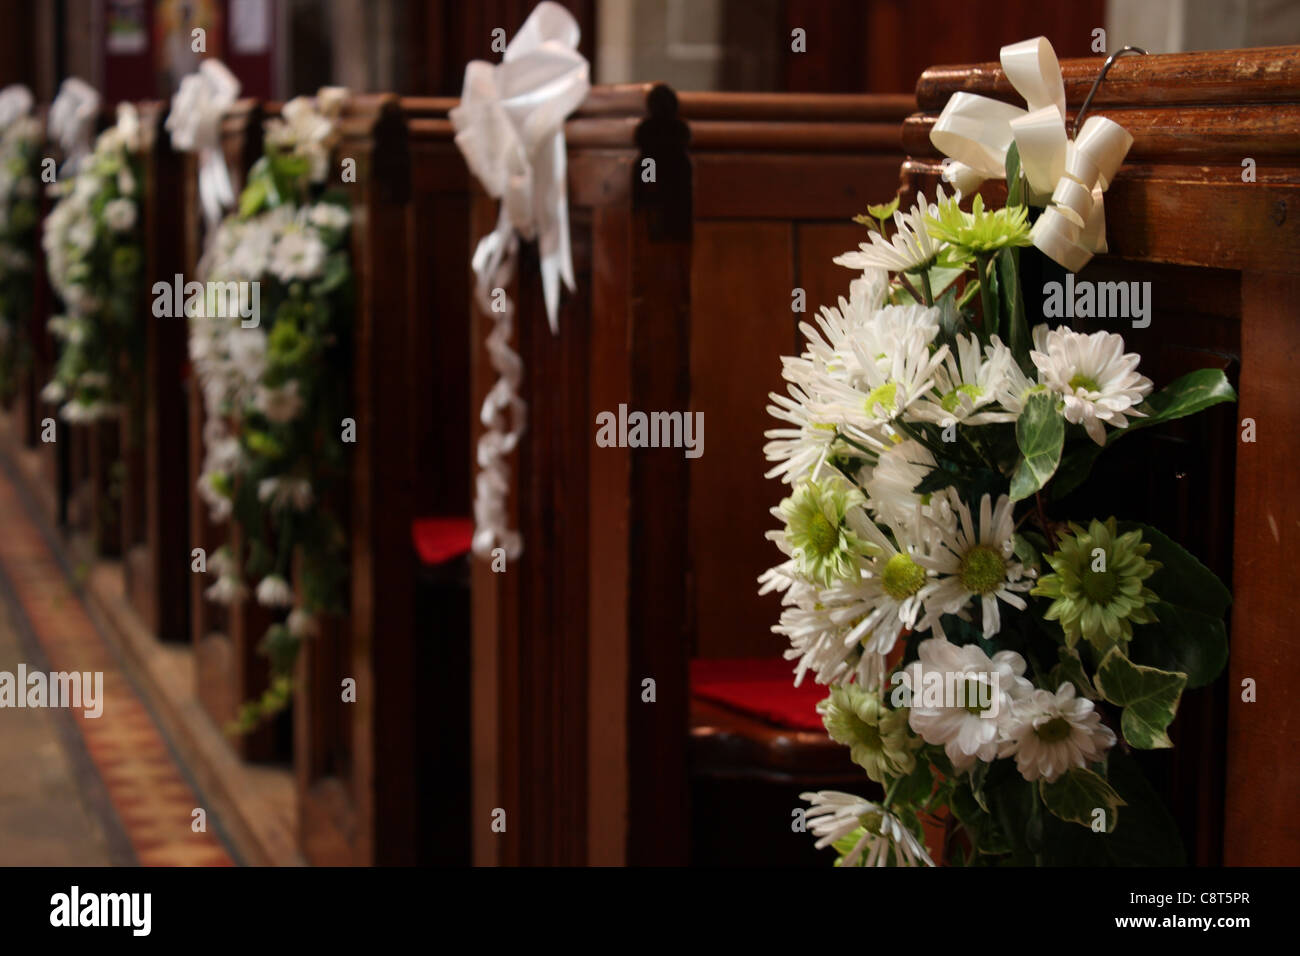 Stock Photo Church Pews With Wedding Floral Arrangements Of Flowers